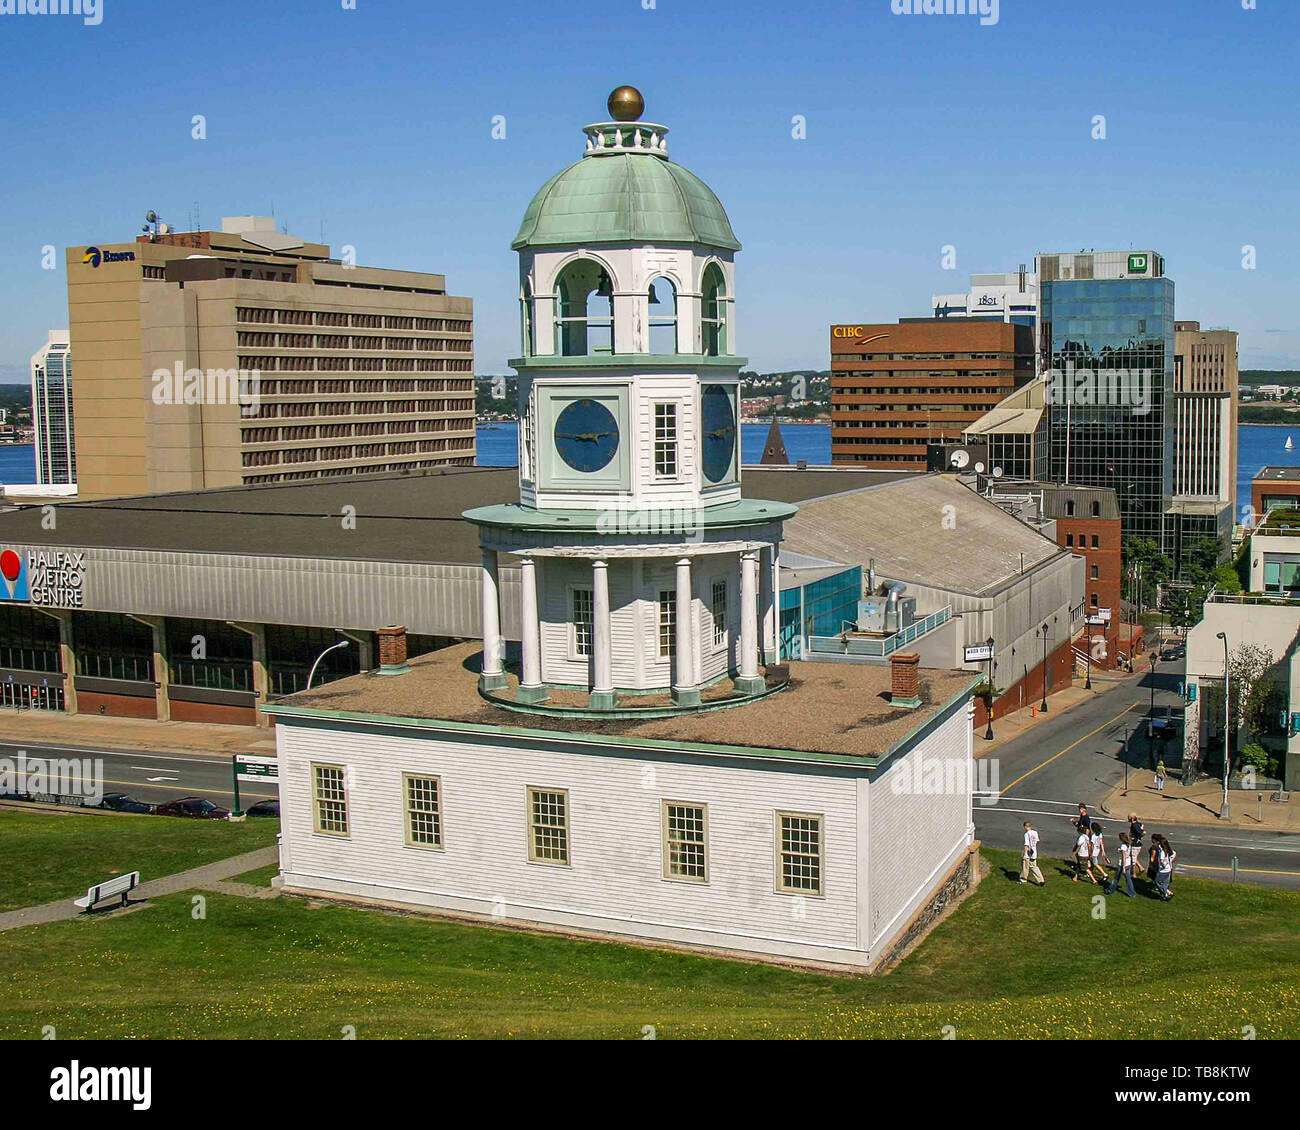 Halifax, Nova Scotia, Canada. 5th Sep, 2005. Built in 1803, the Halifax Town Clock is a major landmark on the eastern slope of Citadel Hill. Credit: Arnold Drapkin/ZUMA Wire/Alamy Live News - Stock Image